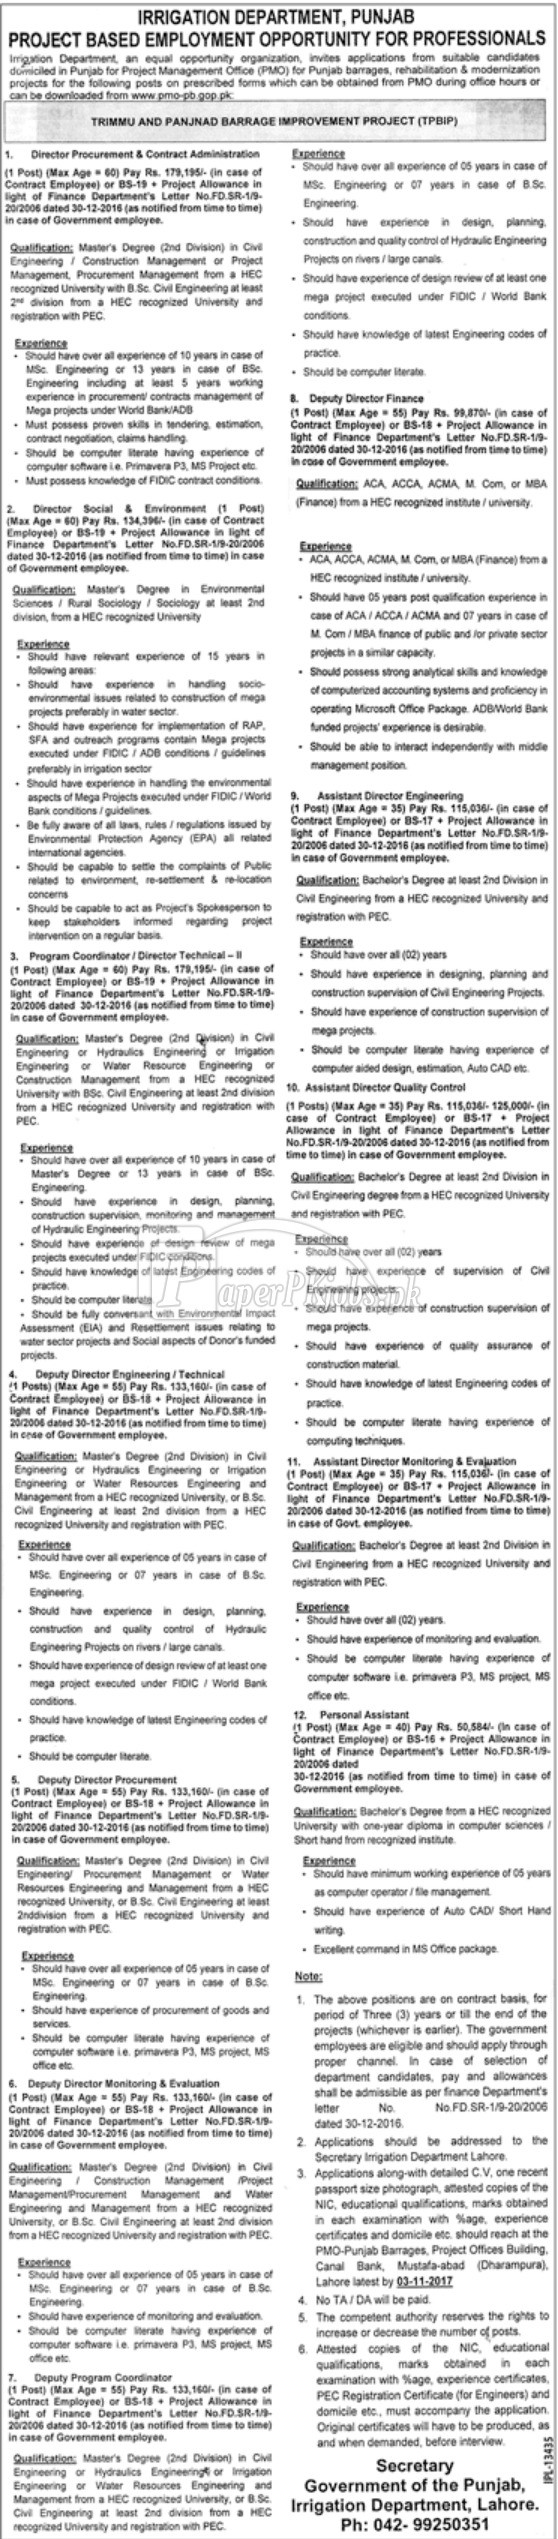 Irrigation Department Government of Punjab Jobs 2017